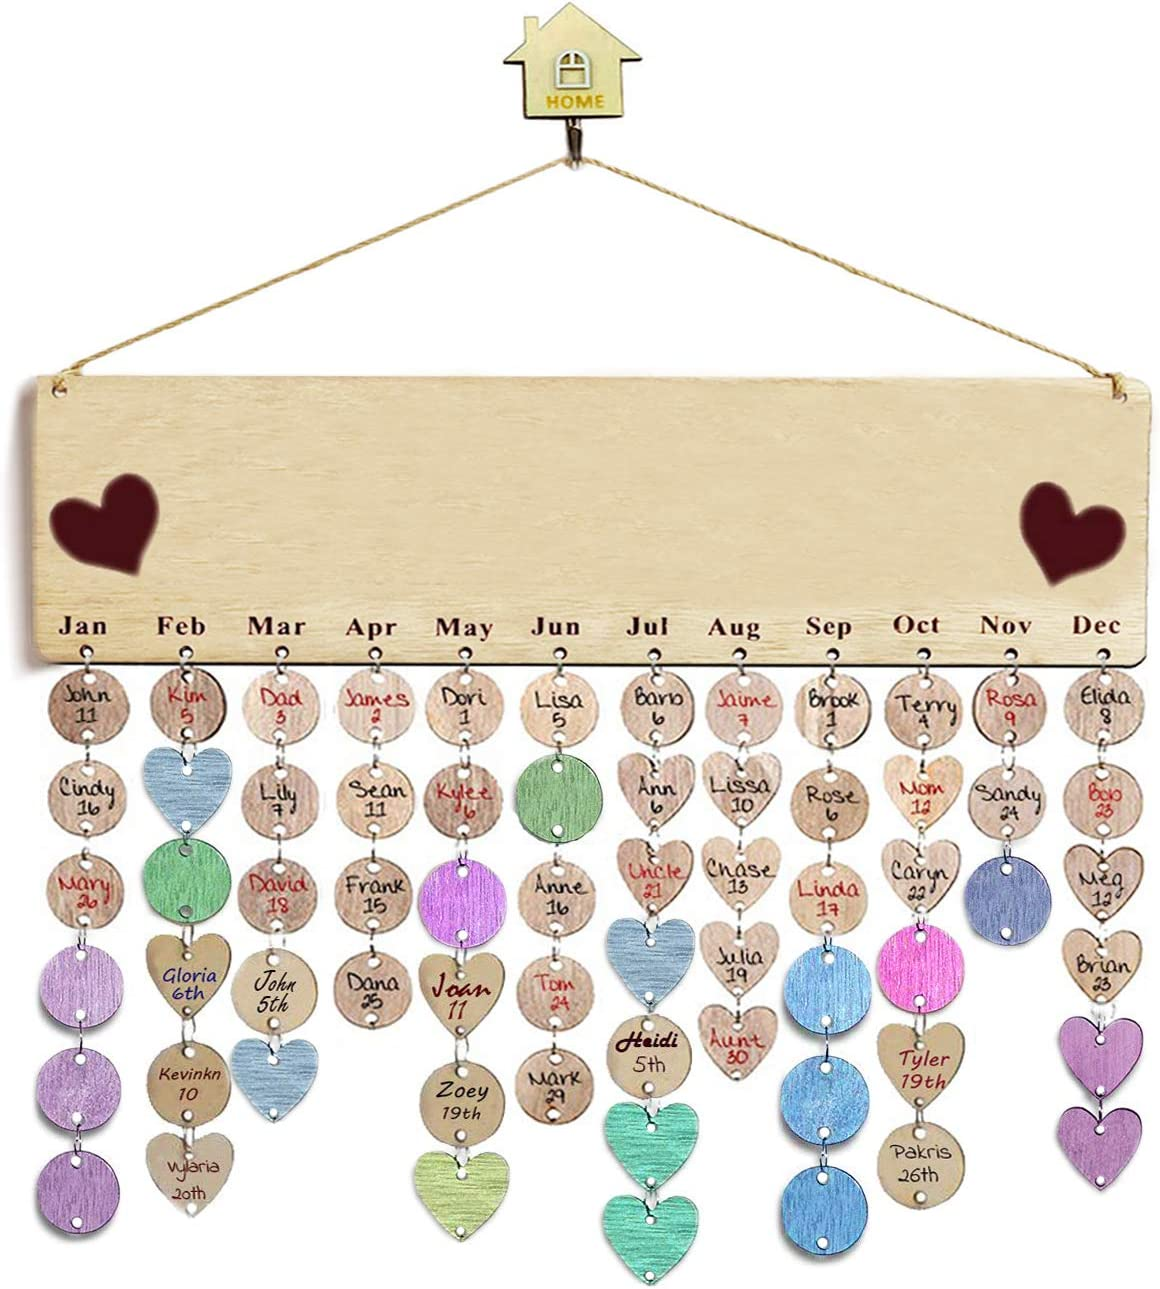 Wooden Calendar Birthday Reminder Wall Hanging Board Plaque, with Unfinished Wood Slices 100 PCS Wooden Discs,Wood Crafts for Family Friends Birthday Reminder Home Wall Decor (Theme DIY Calendar)